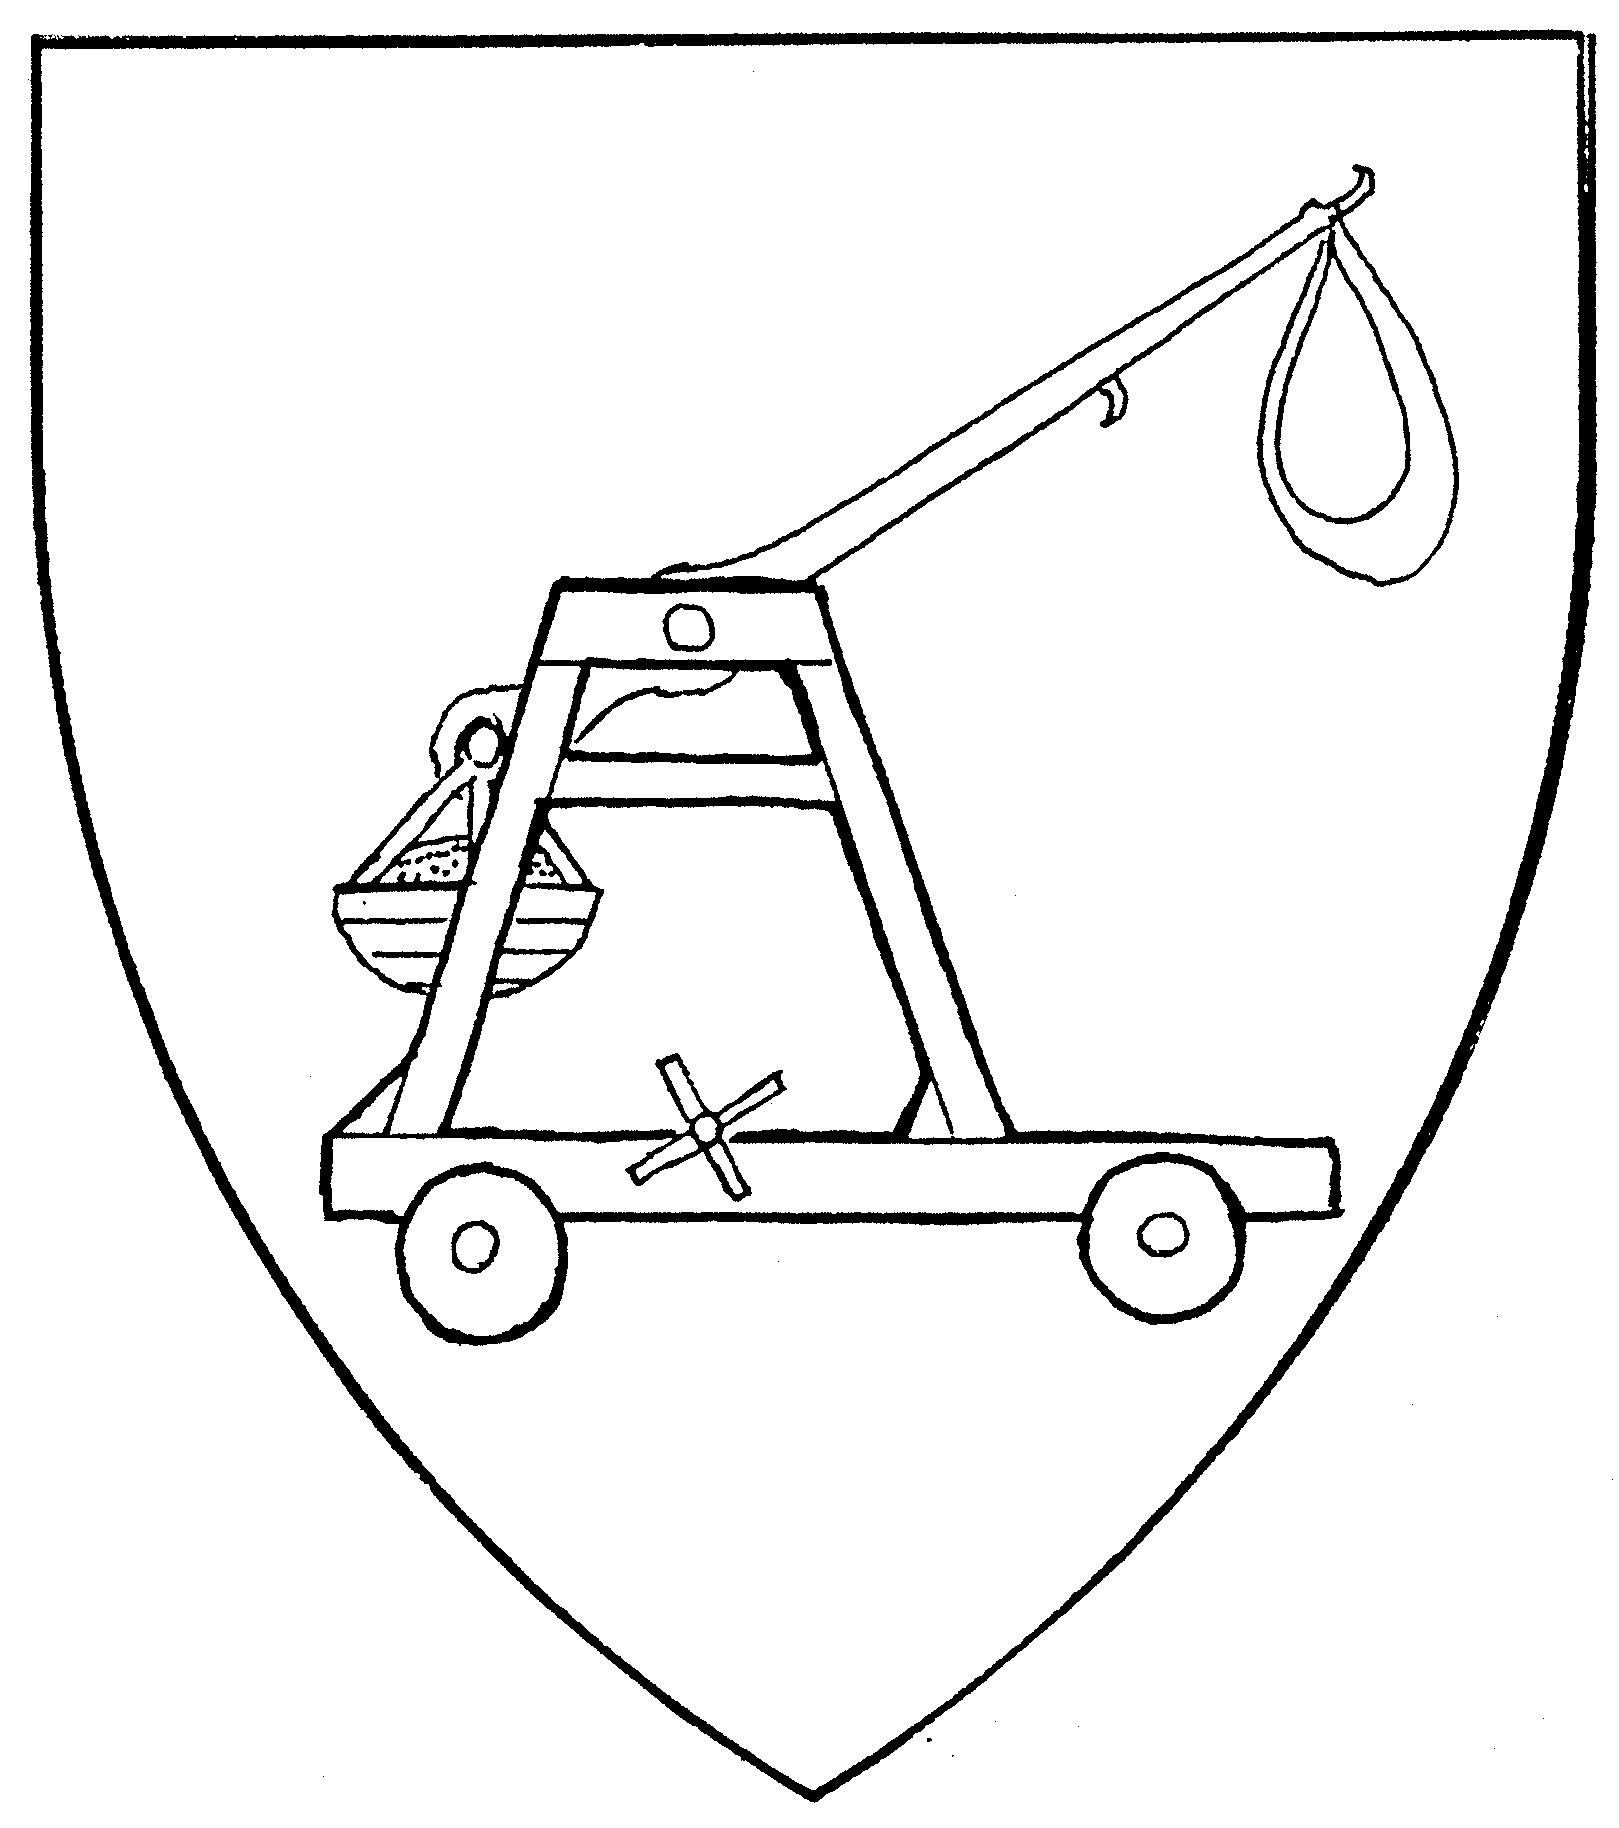 Catapult Coloring Page Sketch Templates additionally Effect Of Trebuchet Arm Length Or Counterweight Mass On Projectile Distance likewise Trebuchet Drawing in addition Renovation And Repurposing Oud Wezenhuis To Social House Waw Architects together with Ballista Blueprints. on trebuchet sketch